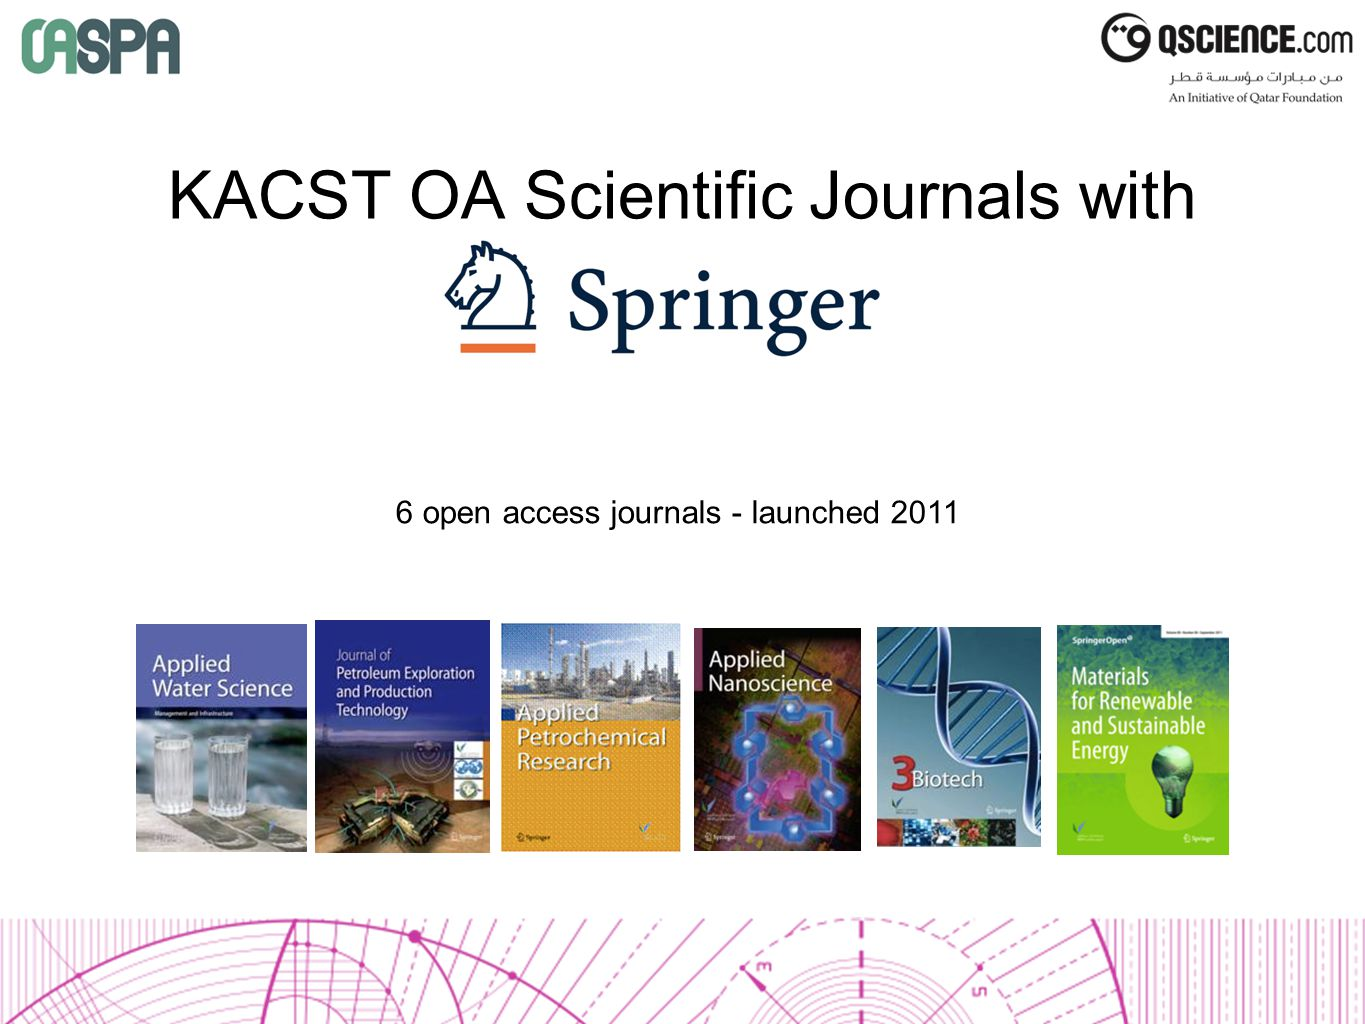 KACST OA Scientific Journals with Springer 6 open access journals - launched 2011